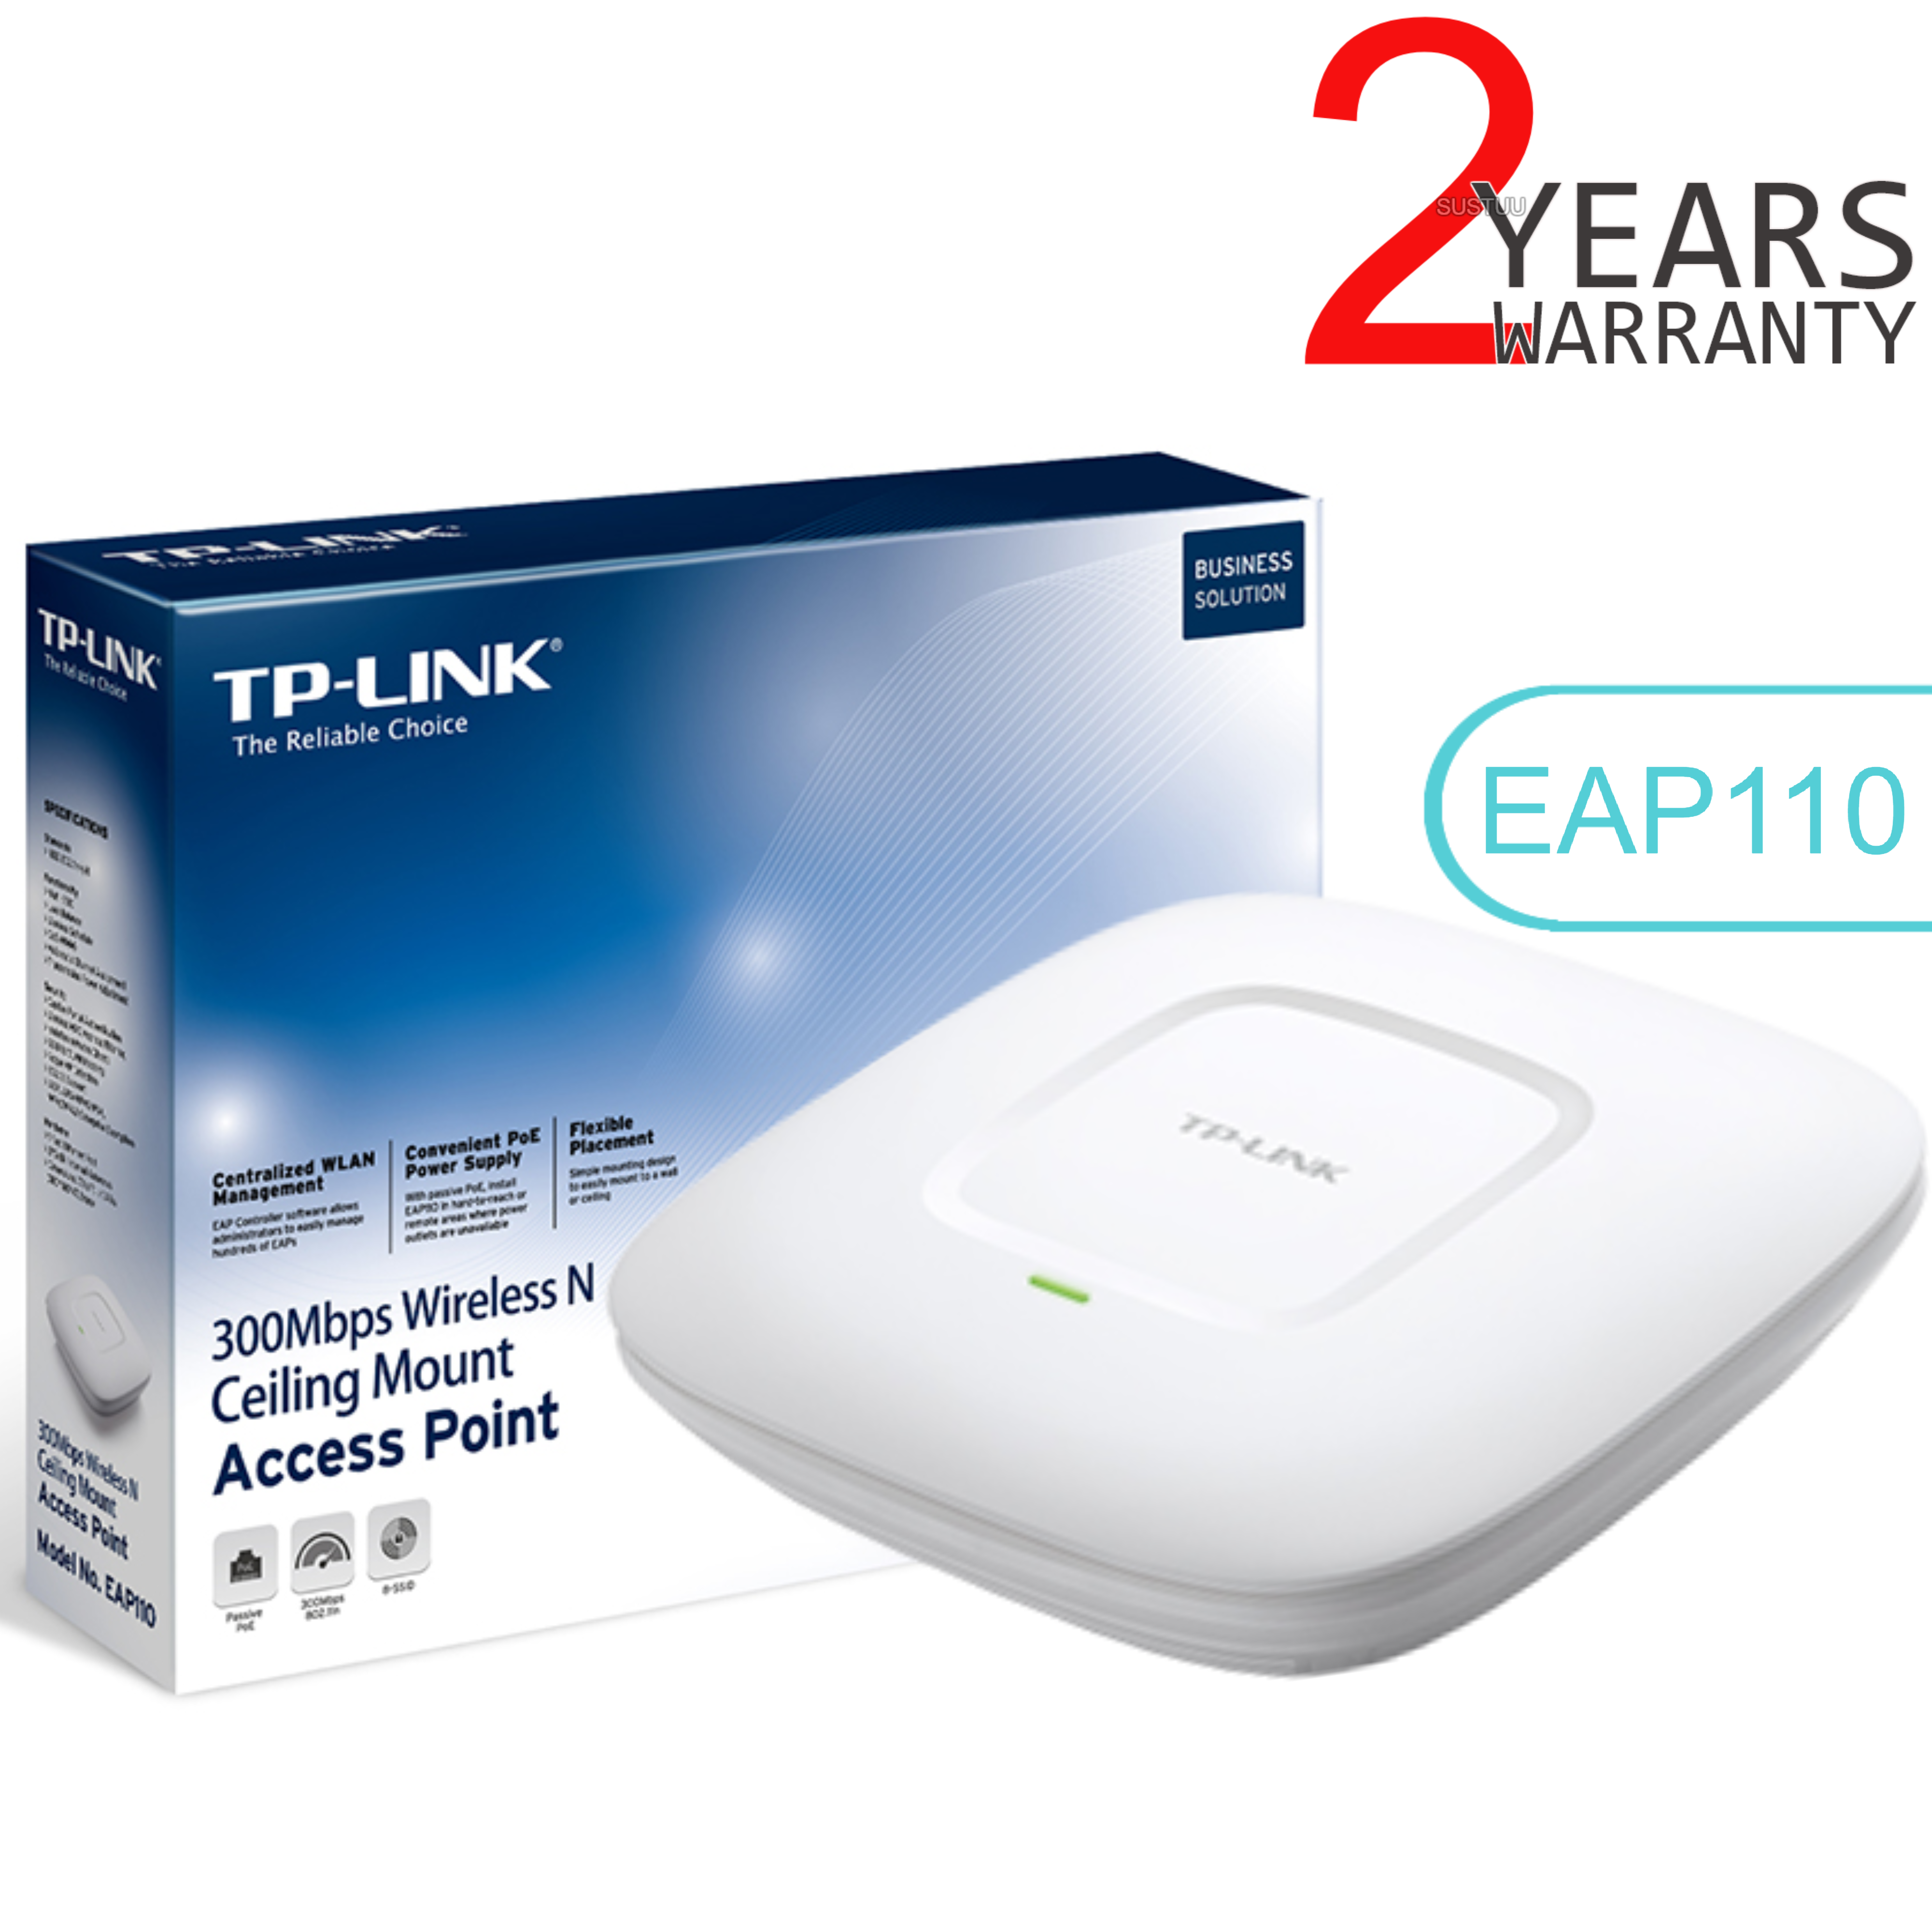 TP-Link EAP110|300Mbps Wireless N Ceiling Mount Access Point|Support Passive PoE